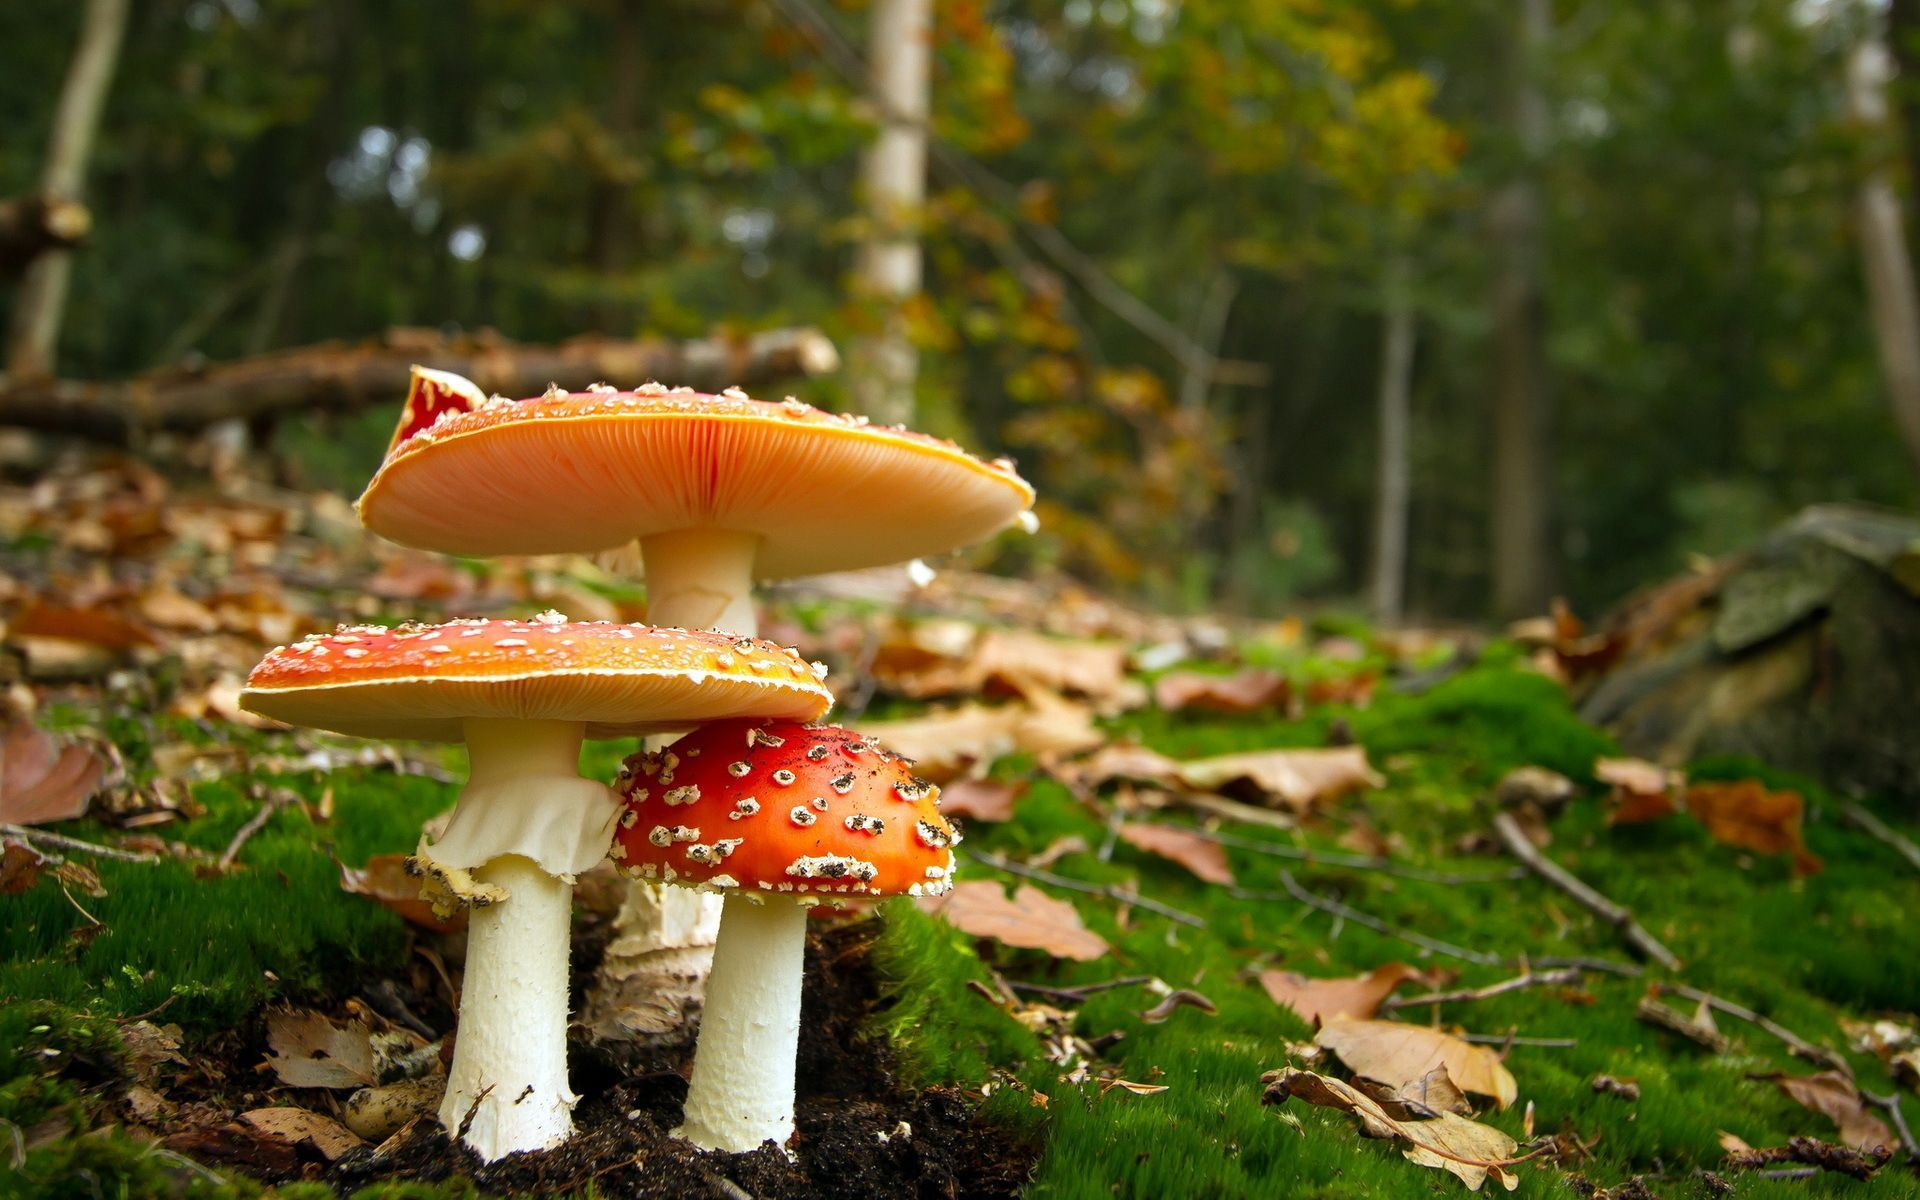 Mushroom Wallpaper For PC Full HD Pictures 1920x1200 30 Wallpapers